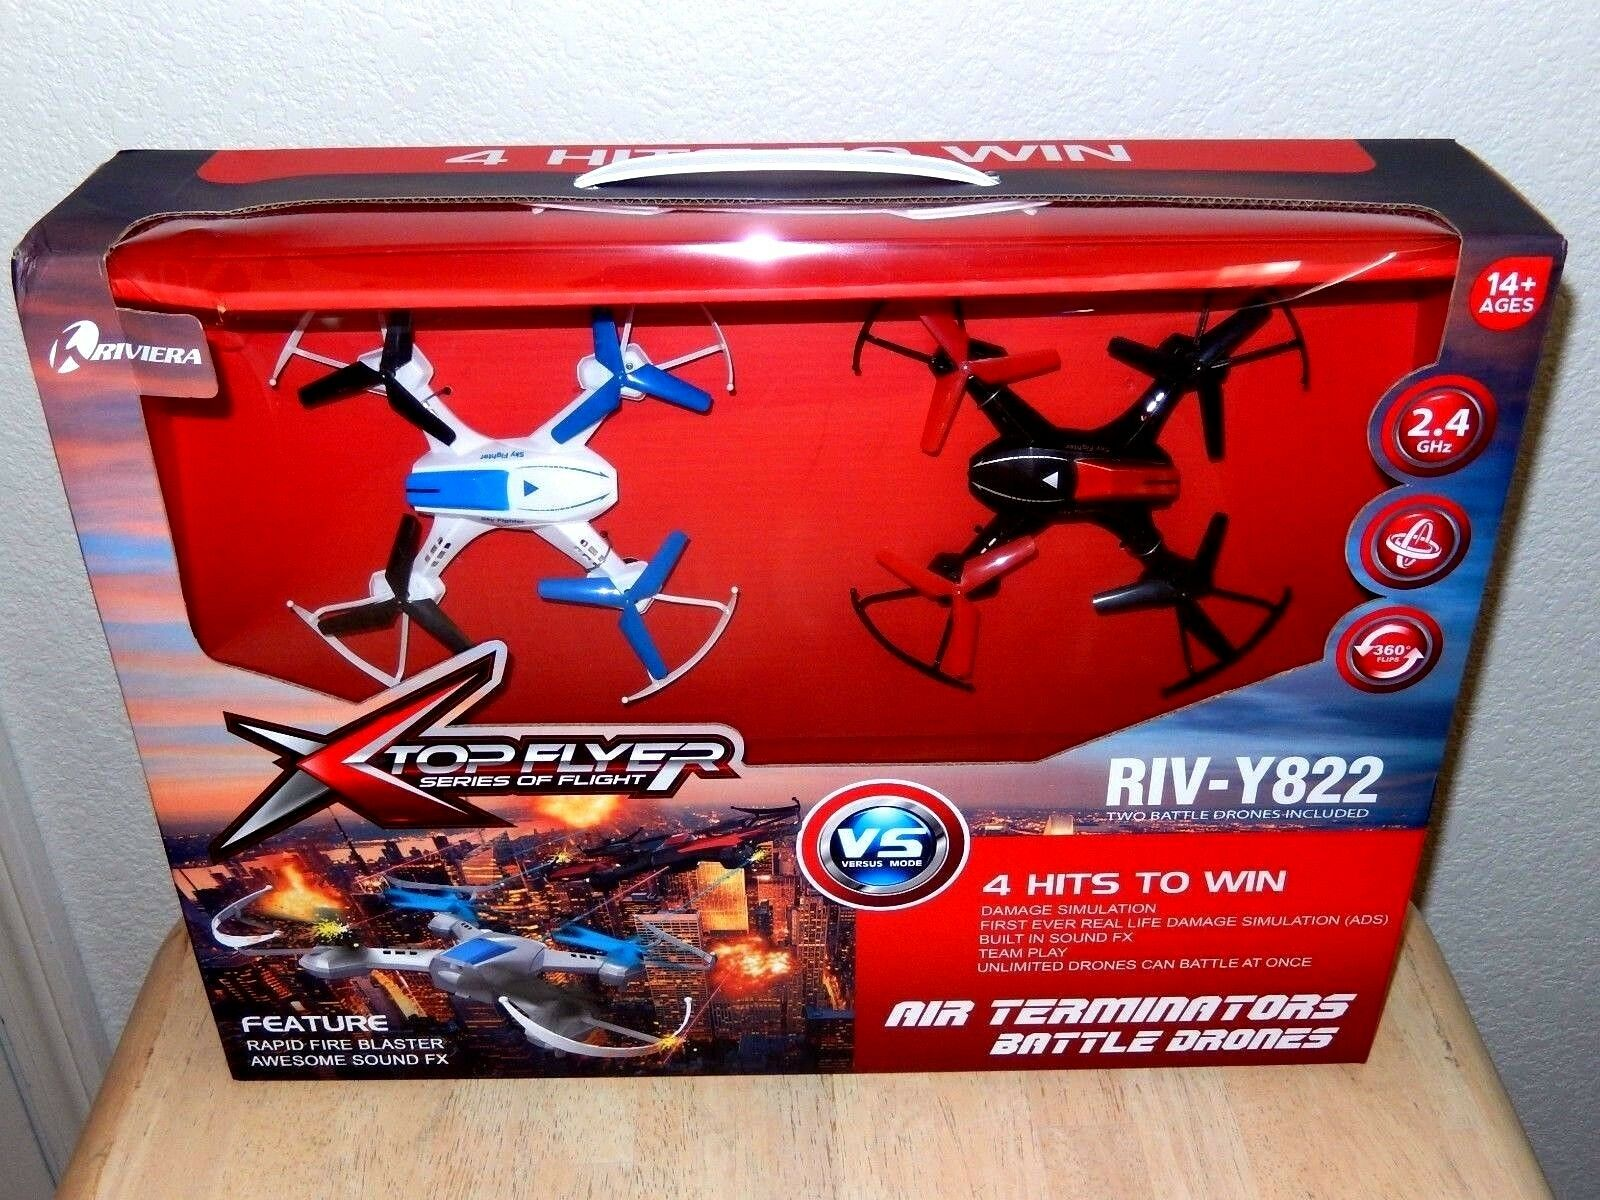 Riviera Air Terminators Flying Battle Drones-set of 2-Rapid Fire, Awesome Sound